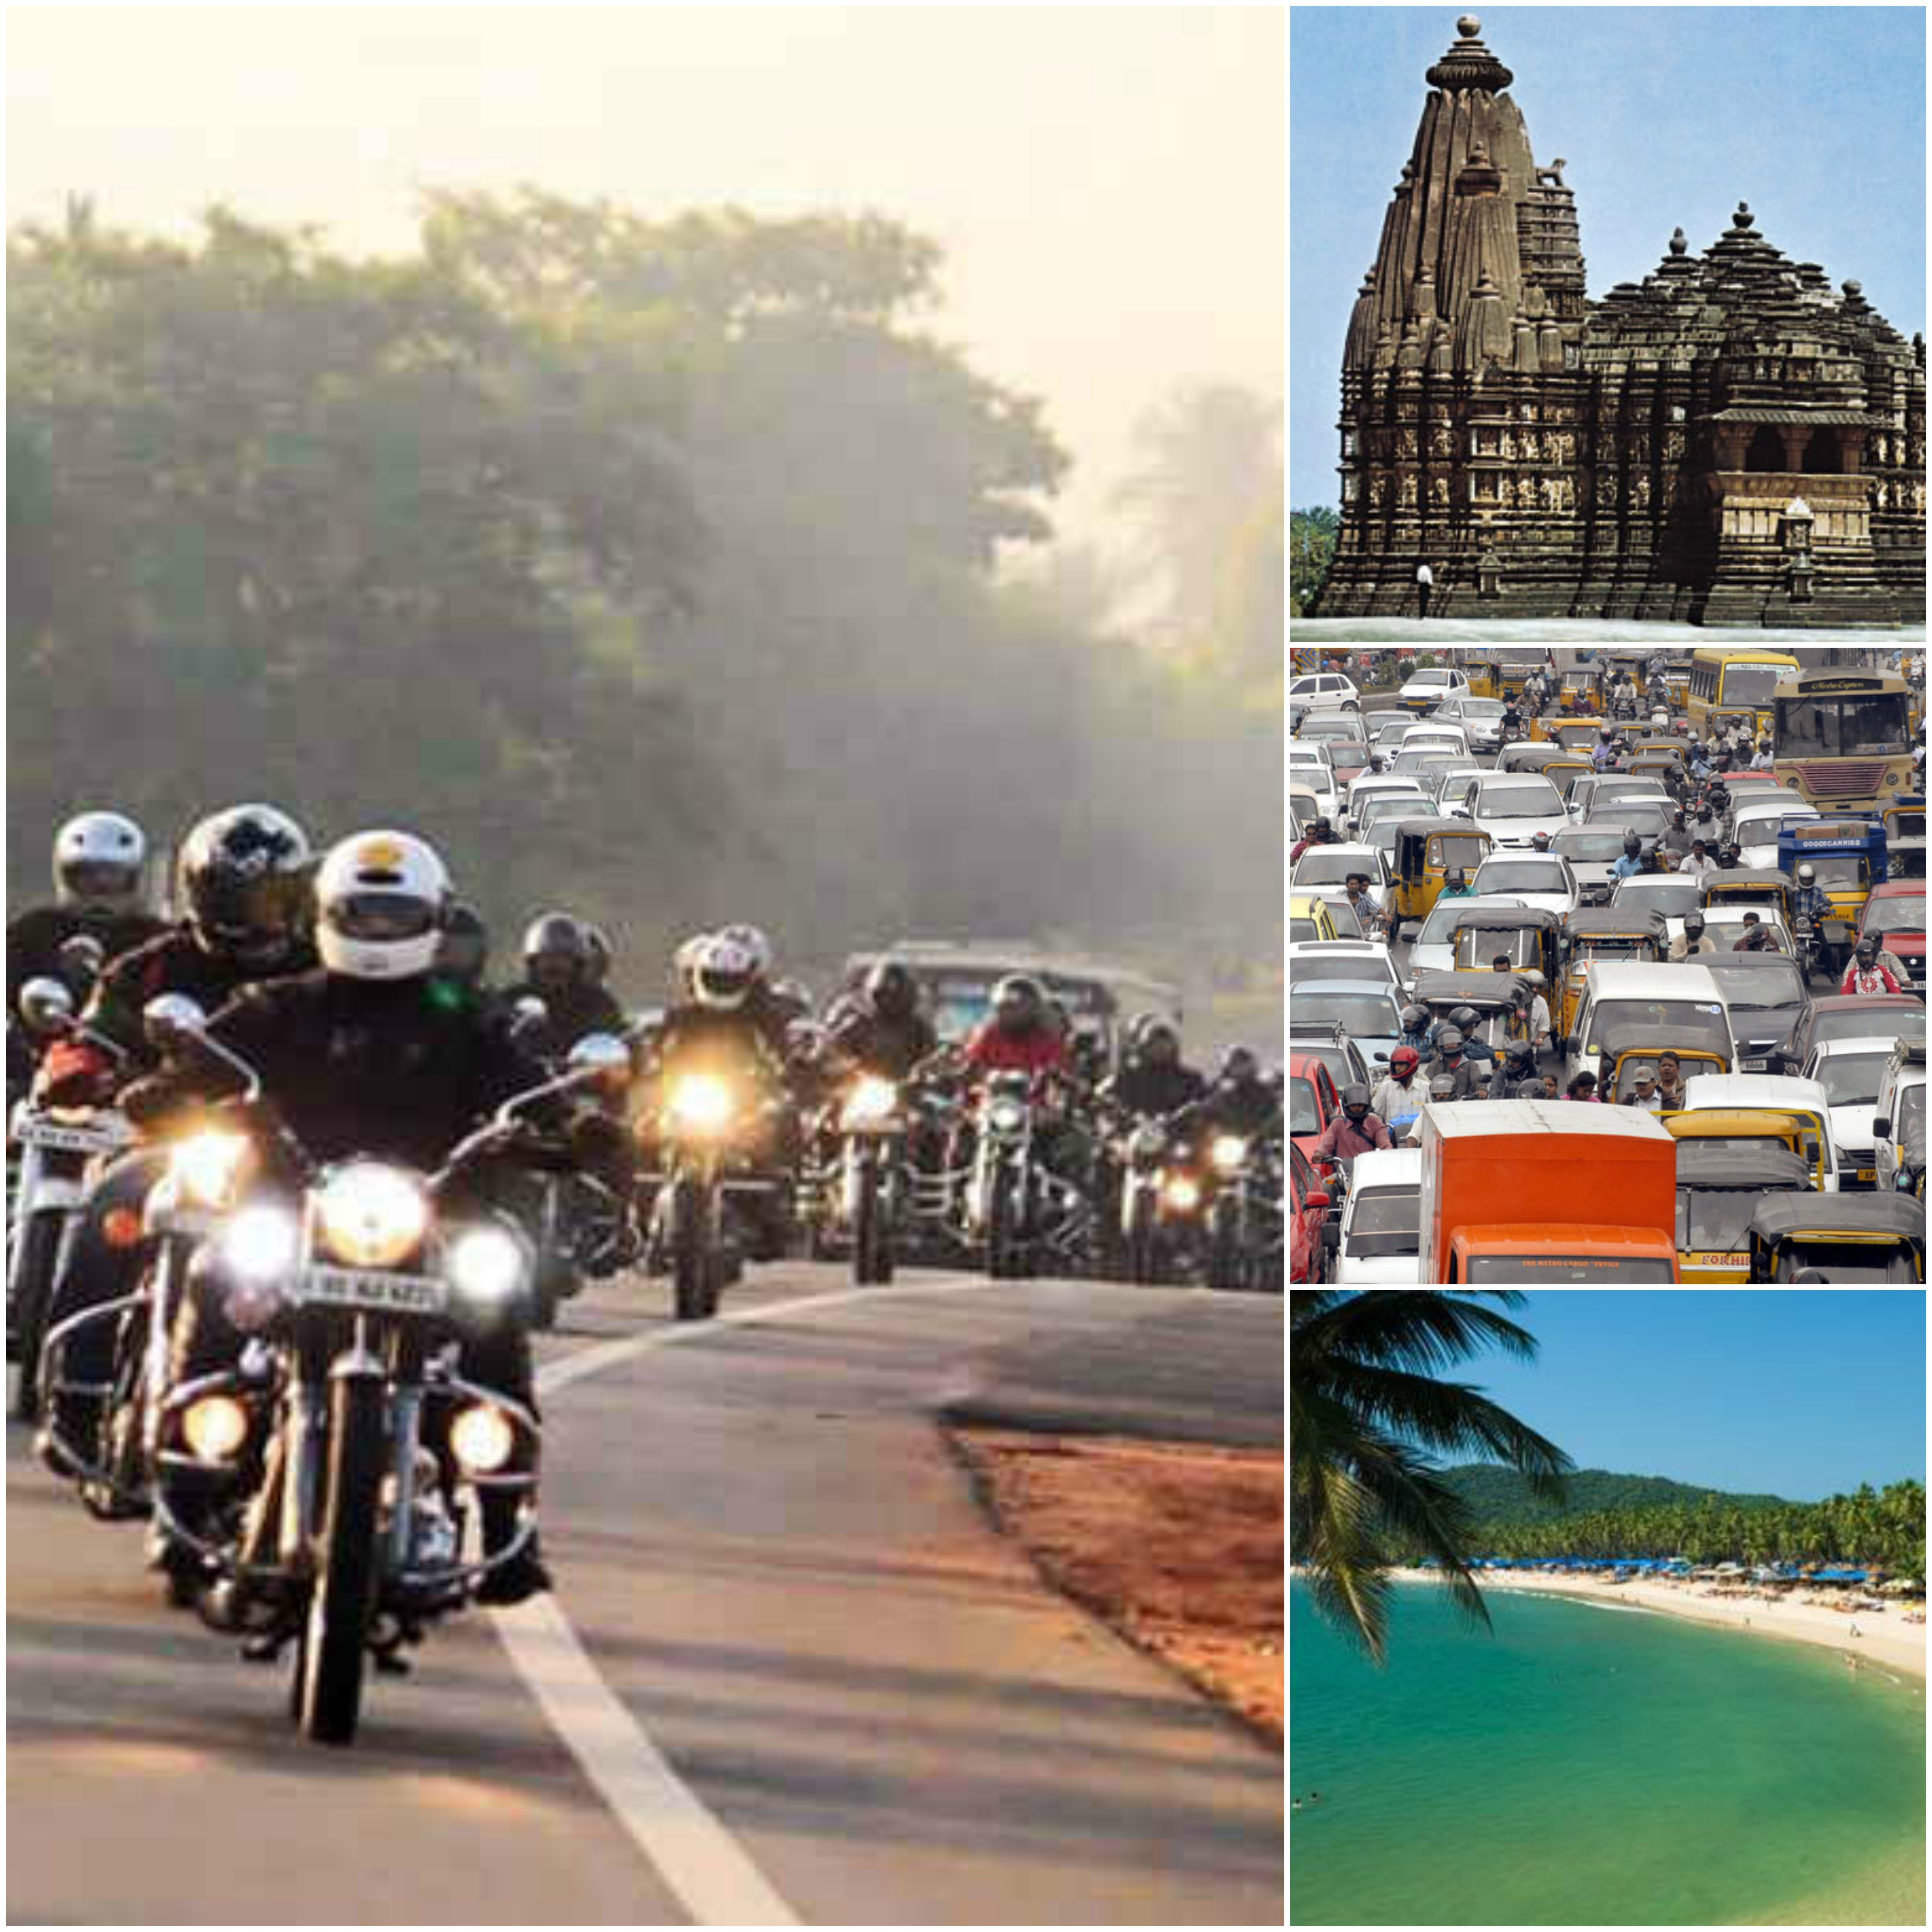 TIME TO VISIT THE INCREDIBLE INDIA!